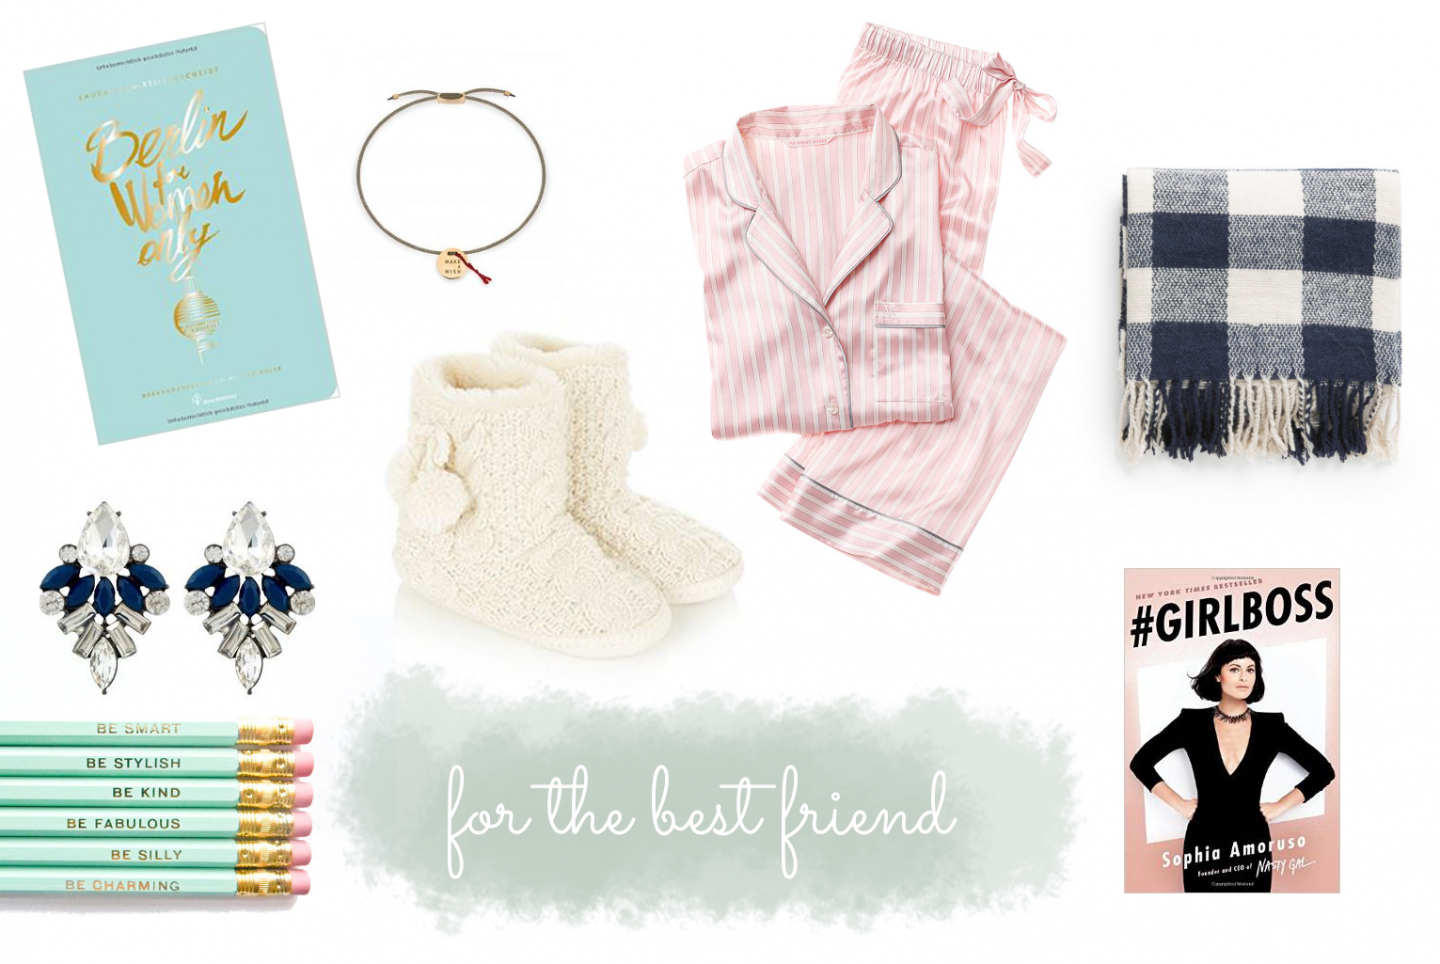 THE WORLDS BIGGEST GIFT GUIDE